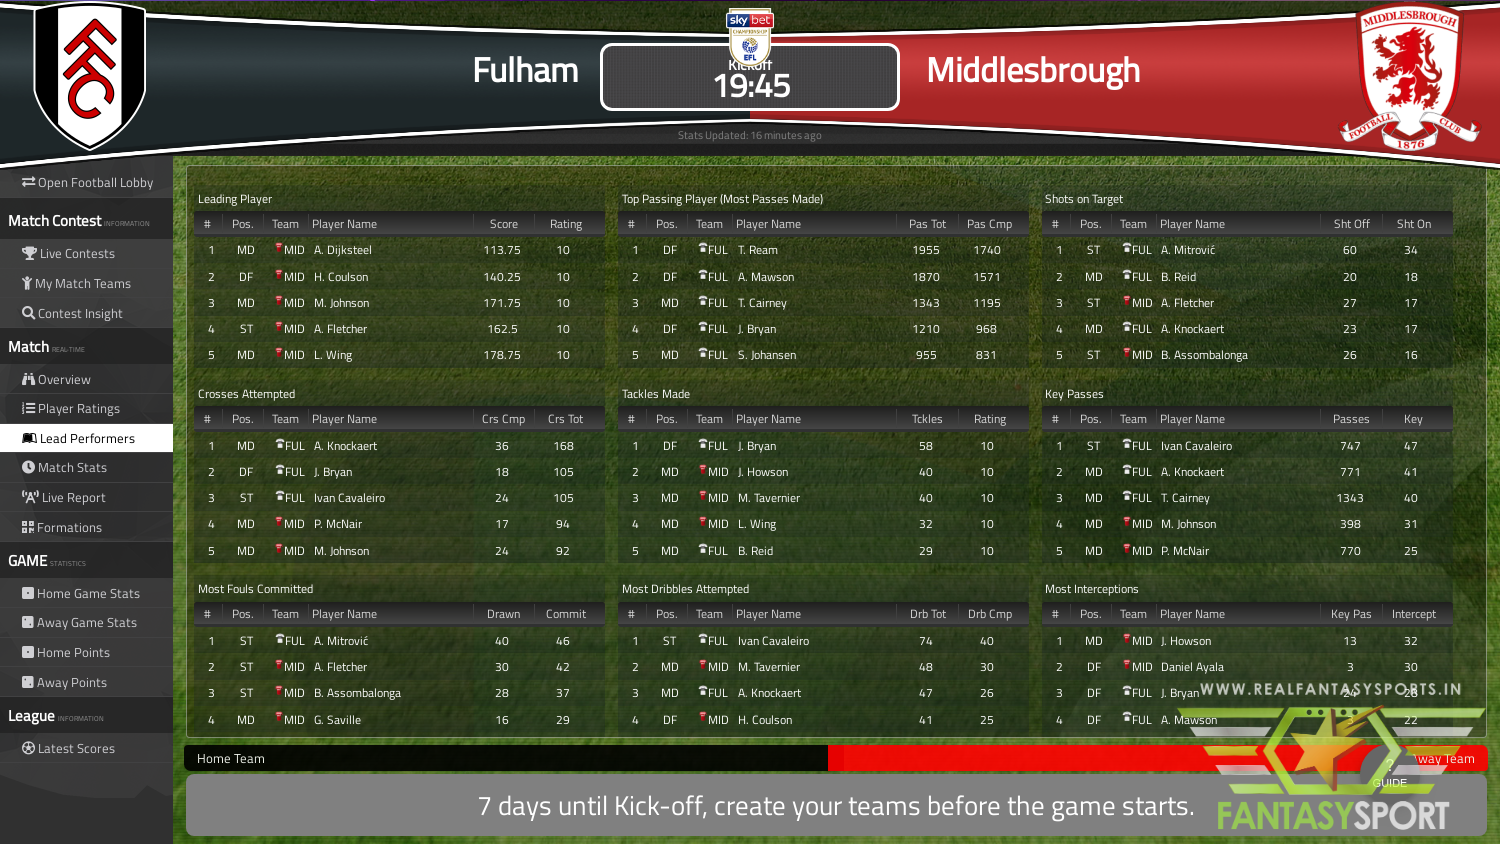 Fantasy Football Fulham Vs Middlesbrough